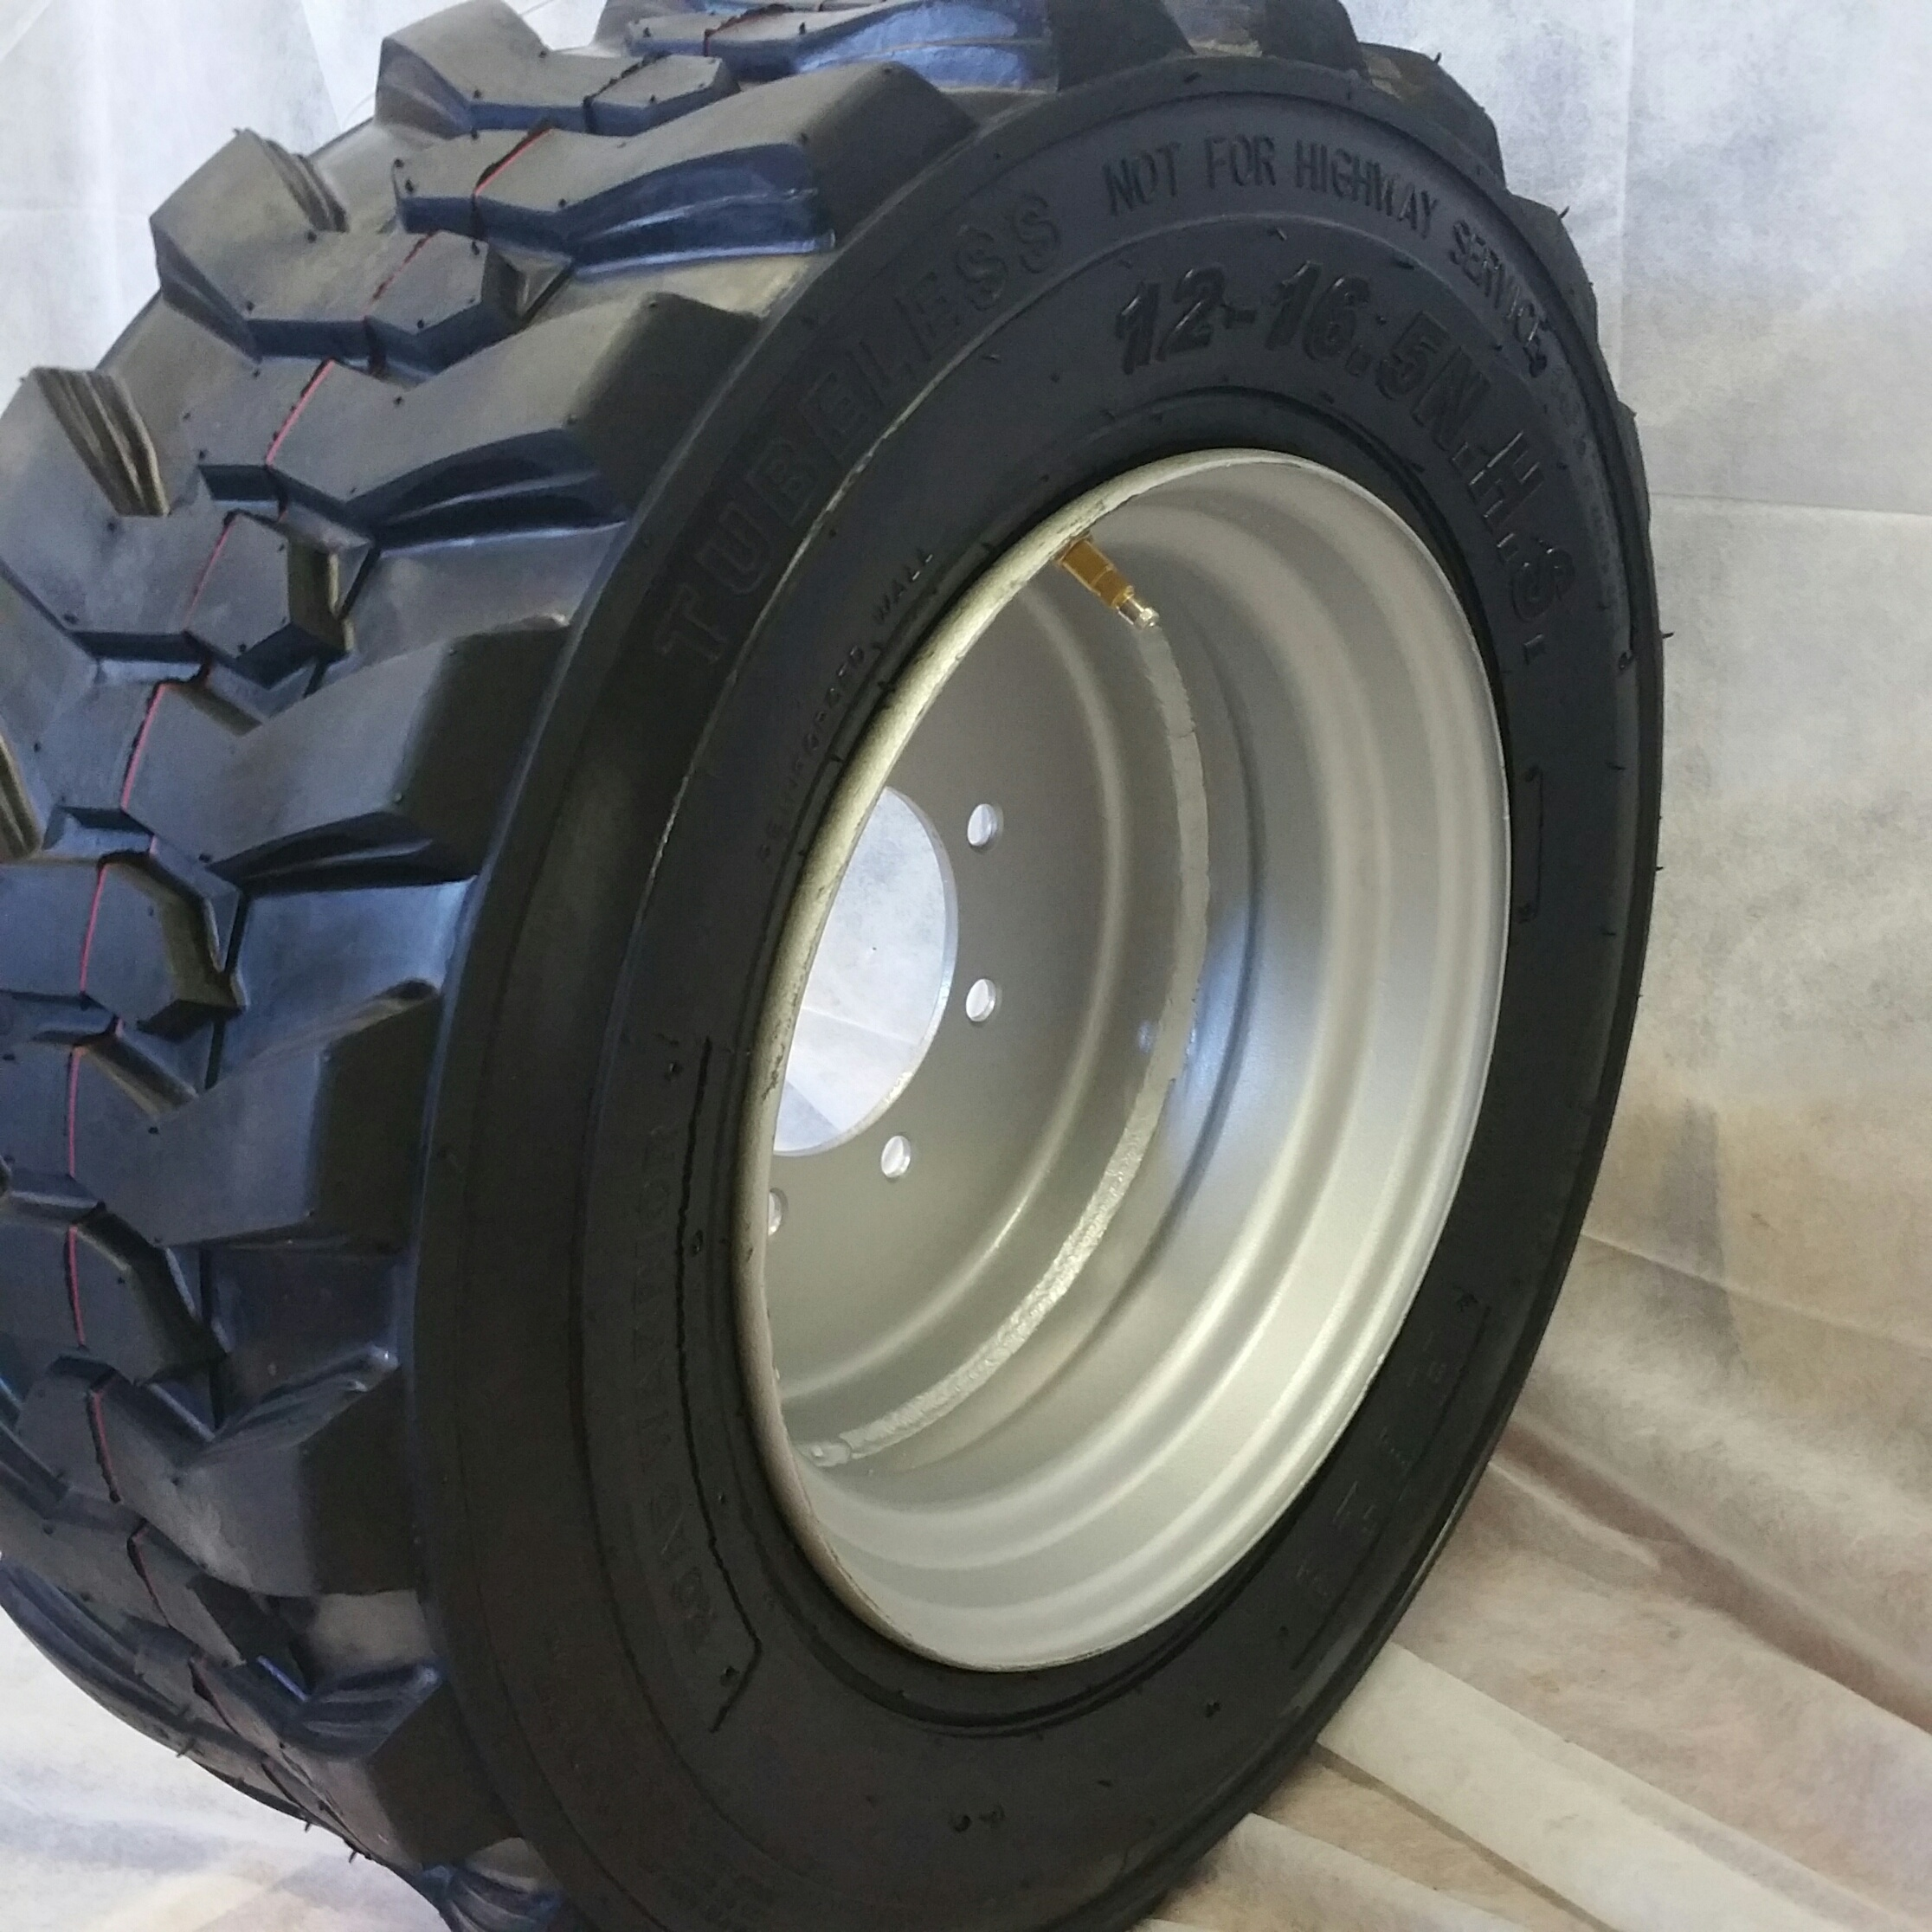 Road Warrior Tires Proudly Announces New Production Of 16 Ply Skid Steer Tires For Bobcat And Other Equipment Newswire